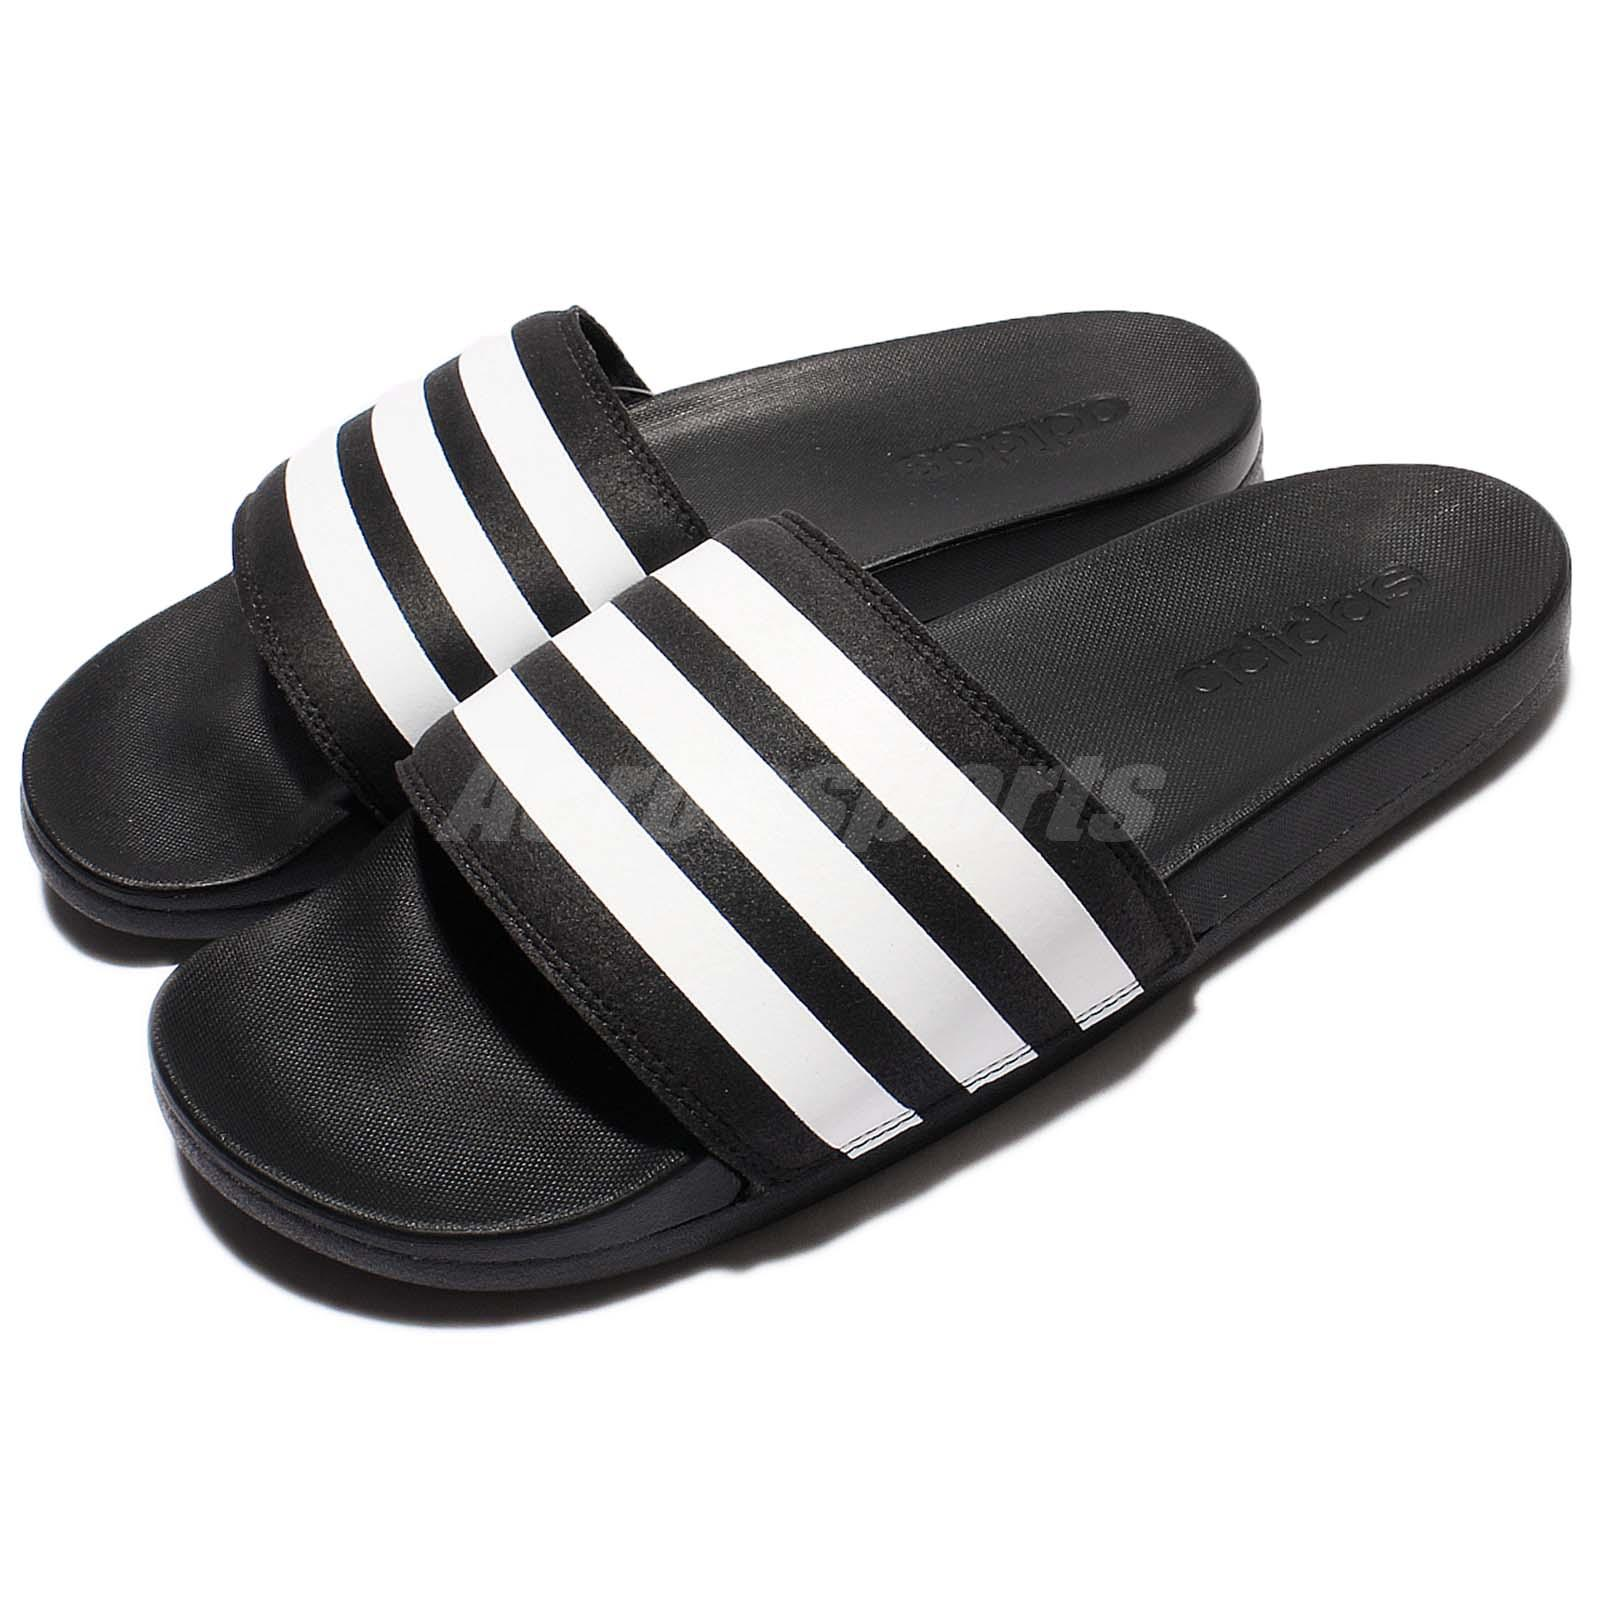 sale retailer c196c 00e80 Details about adidas Adilette CF Cloudfoam Plus Black White Men Sandal Slide  Slipper AQ4935